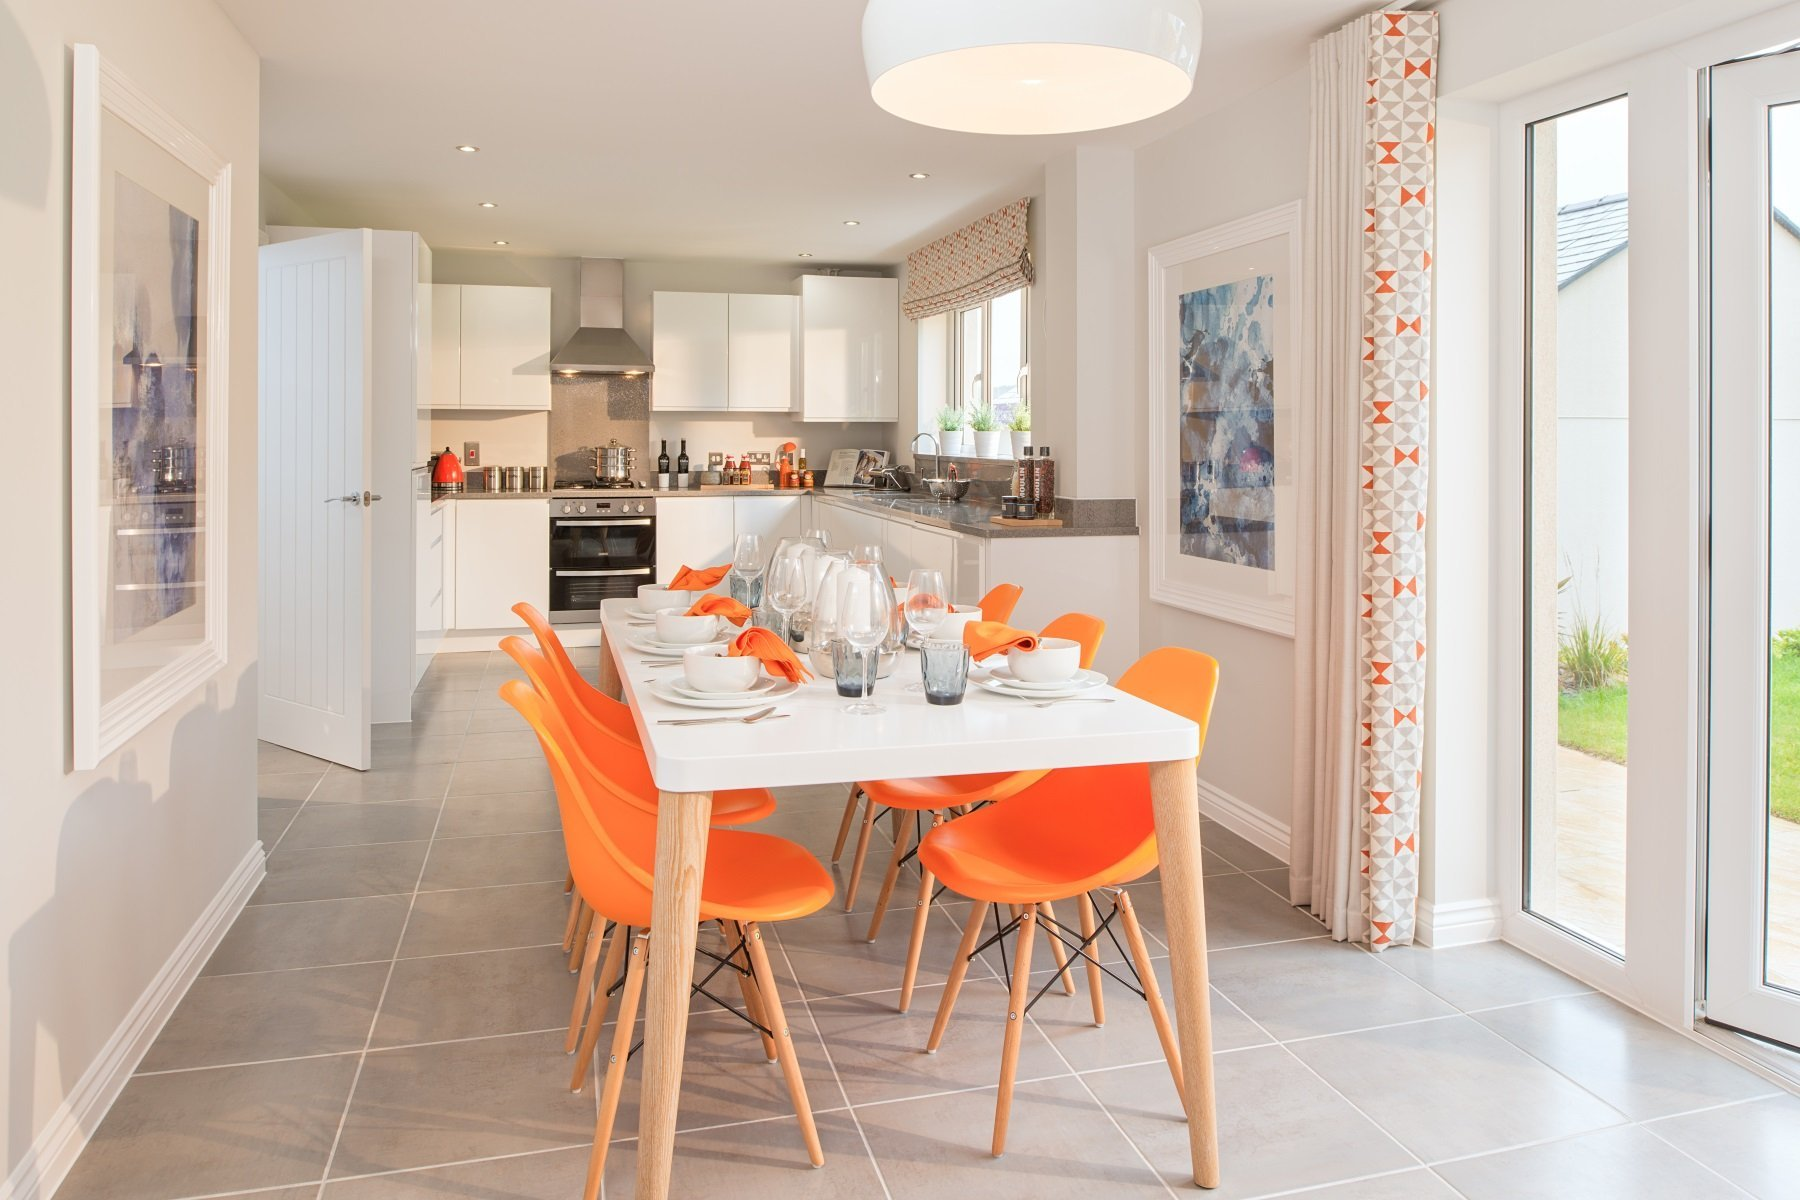 Taylor Wimpey Exeter - Chy An Dowr - Shelford example kitchen 2